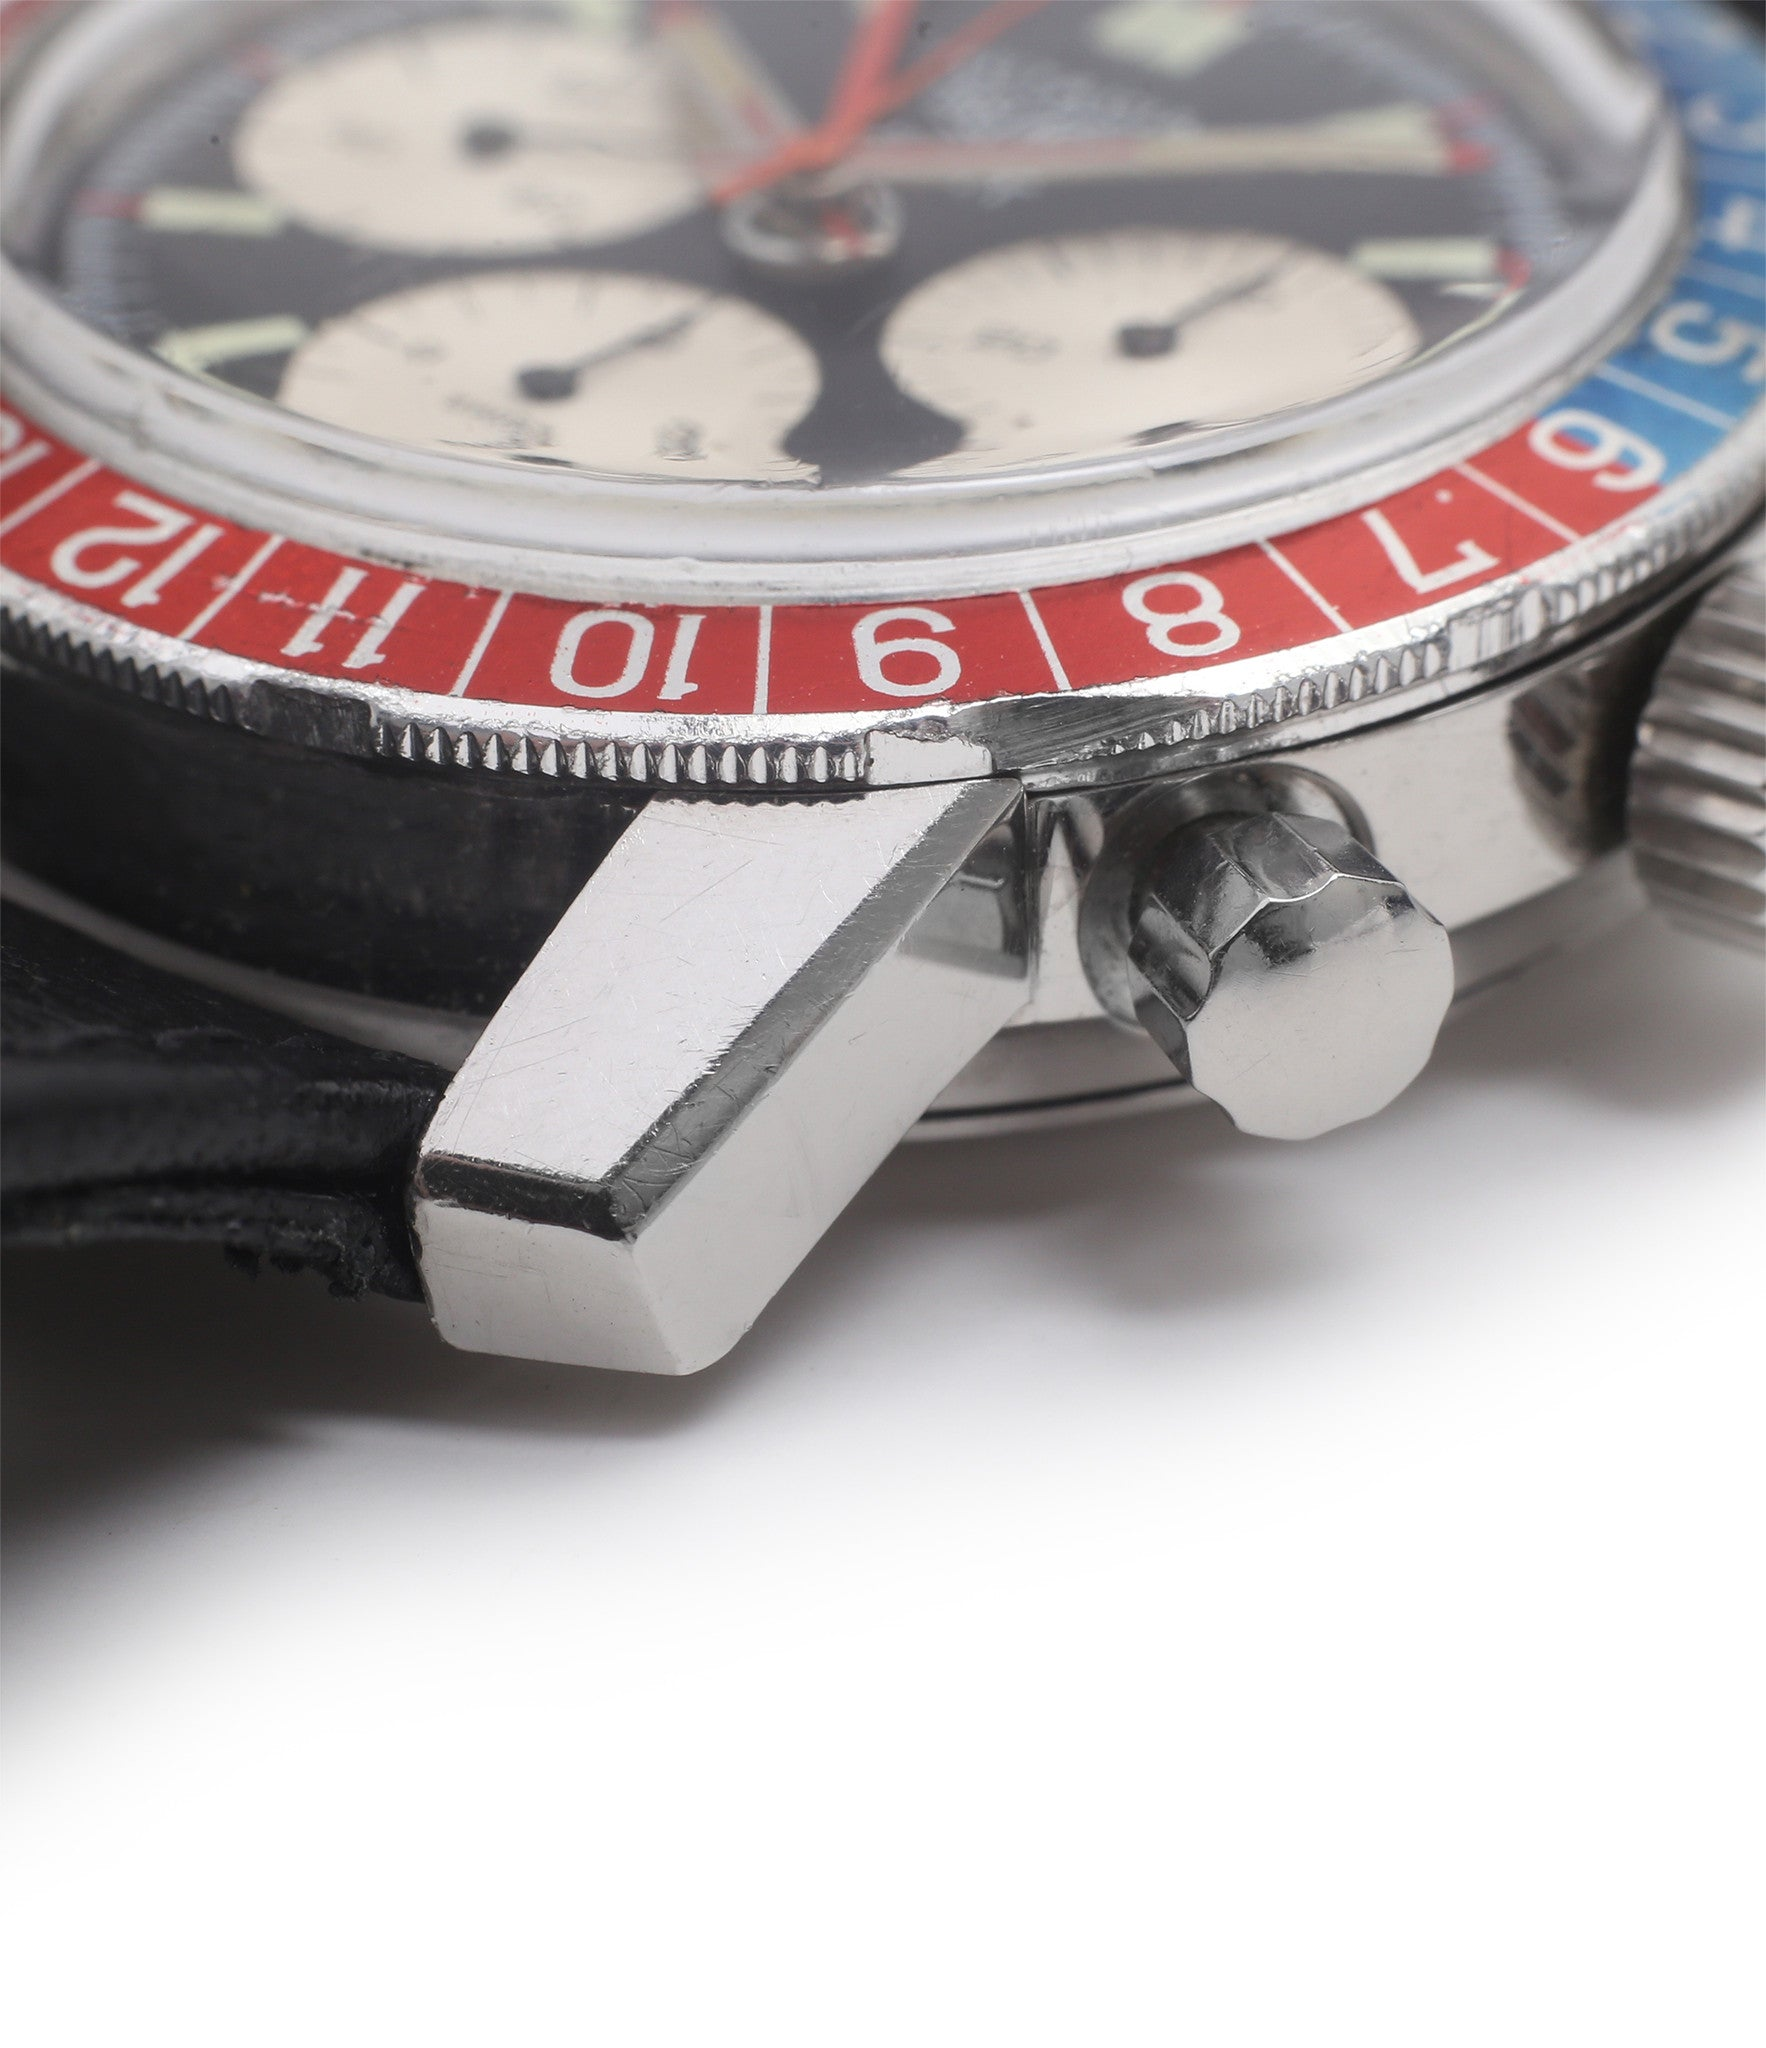 lugs Heuer Autavia GMT 2446C vintage steel chronograph watch online at A Collected Man London